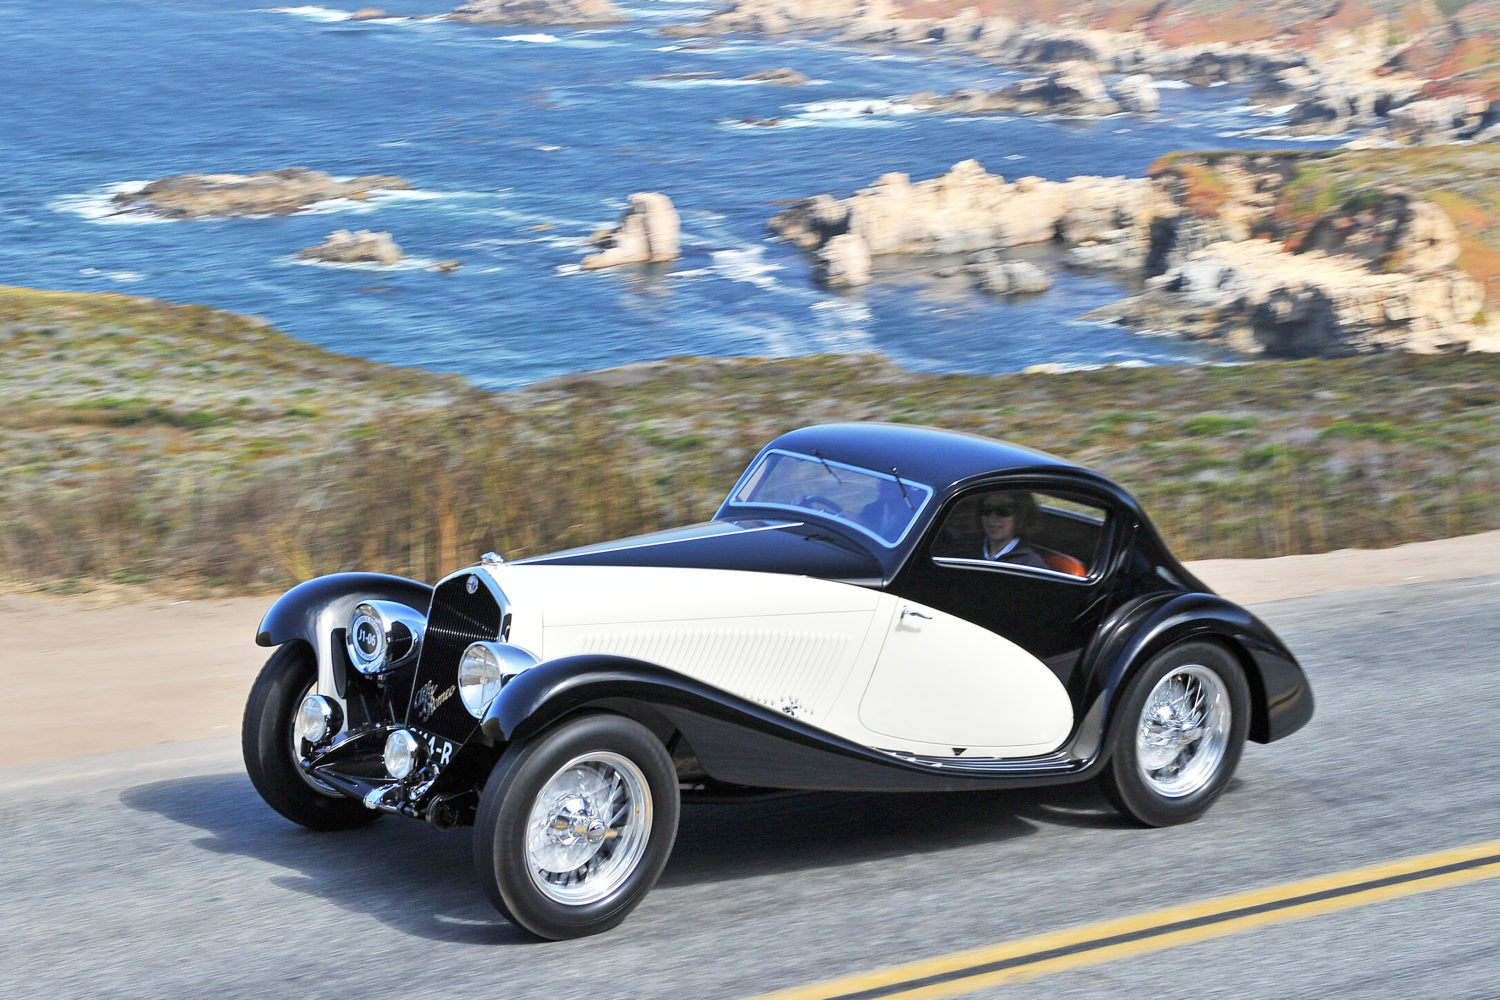 Car of the Week #2: Alfa Romeo 6C 1750 Figoni